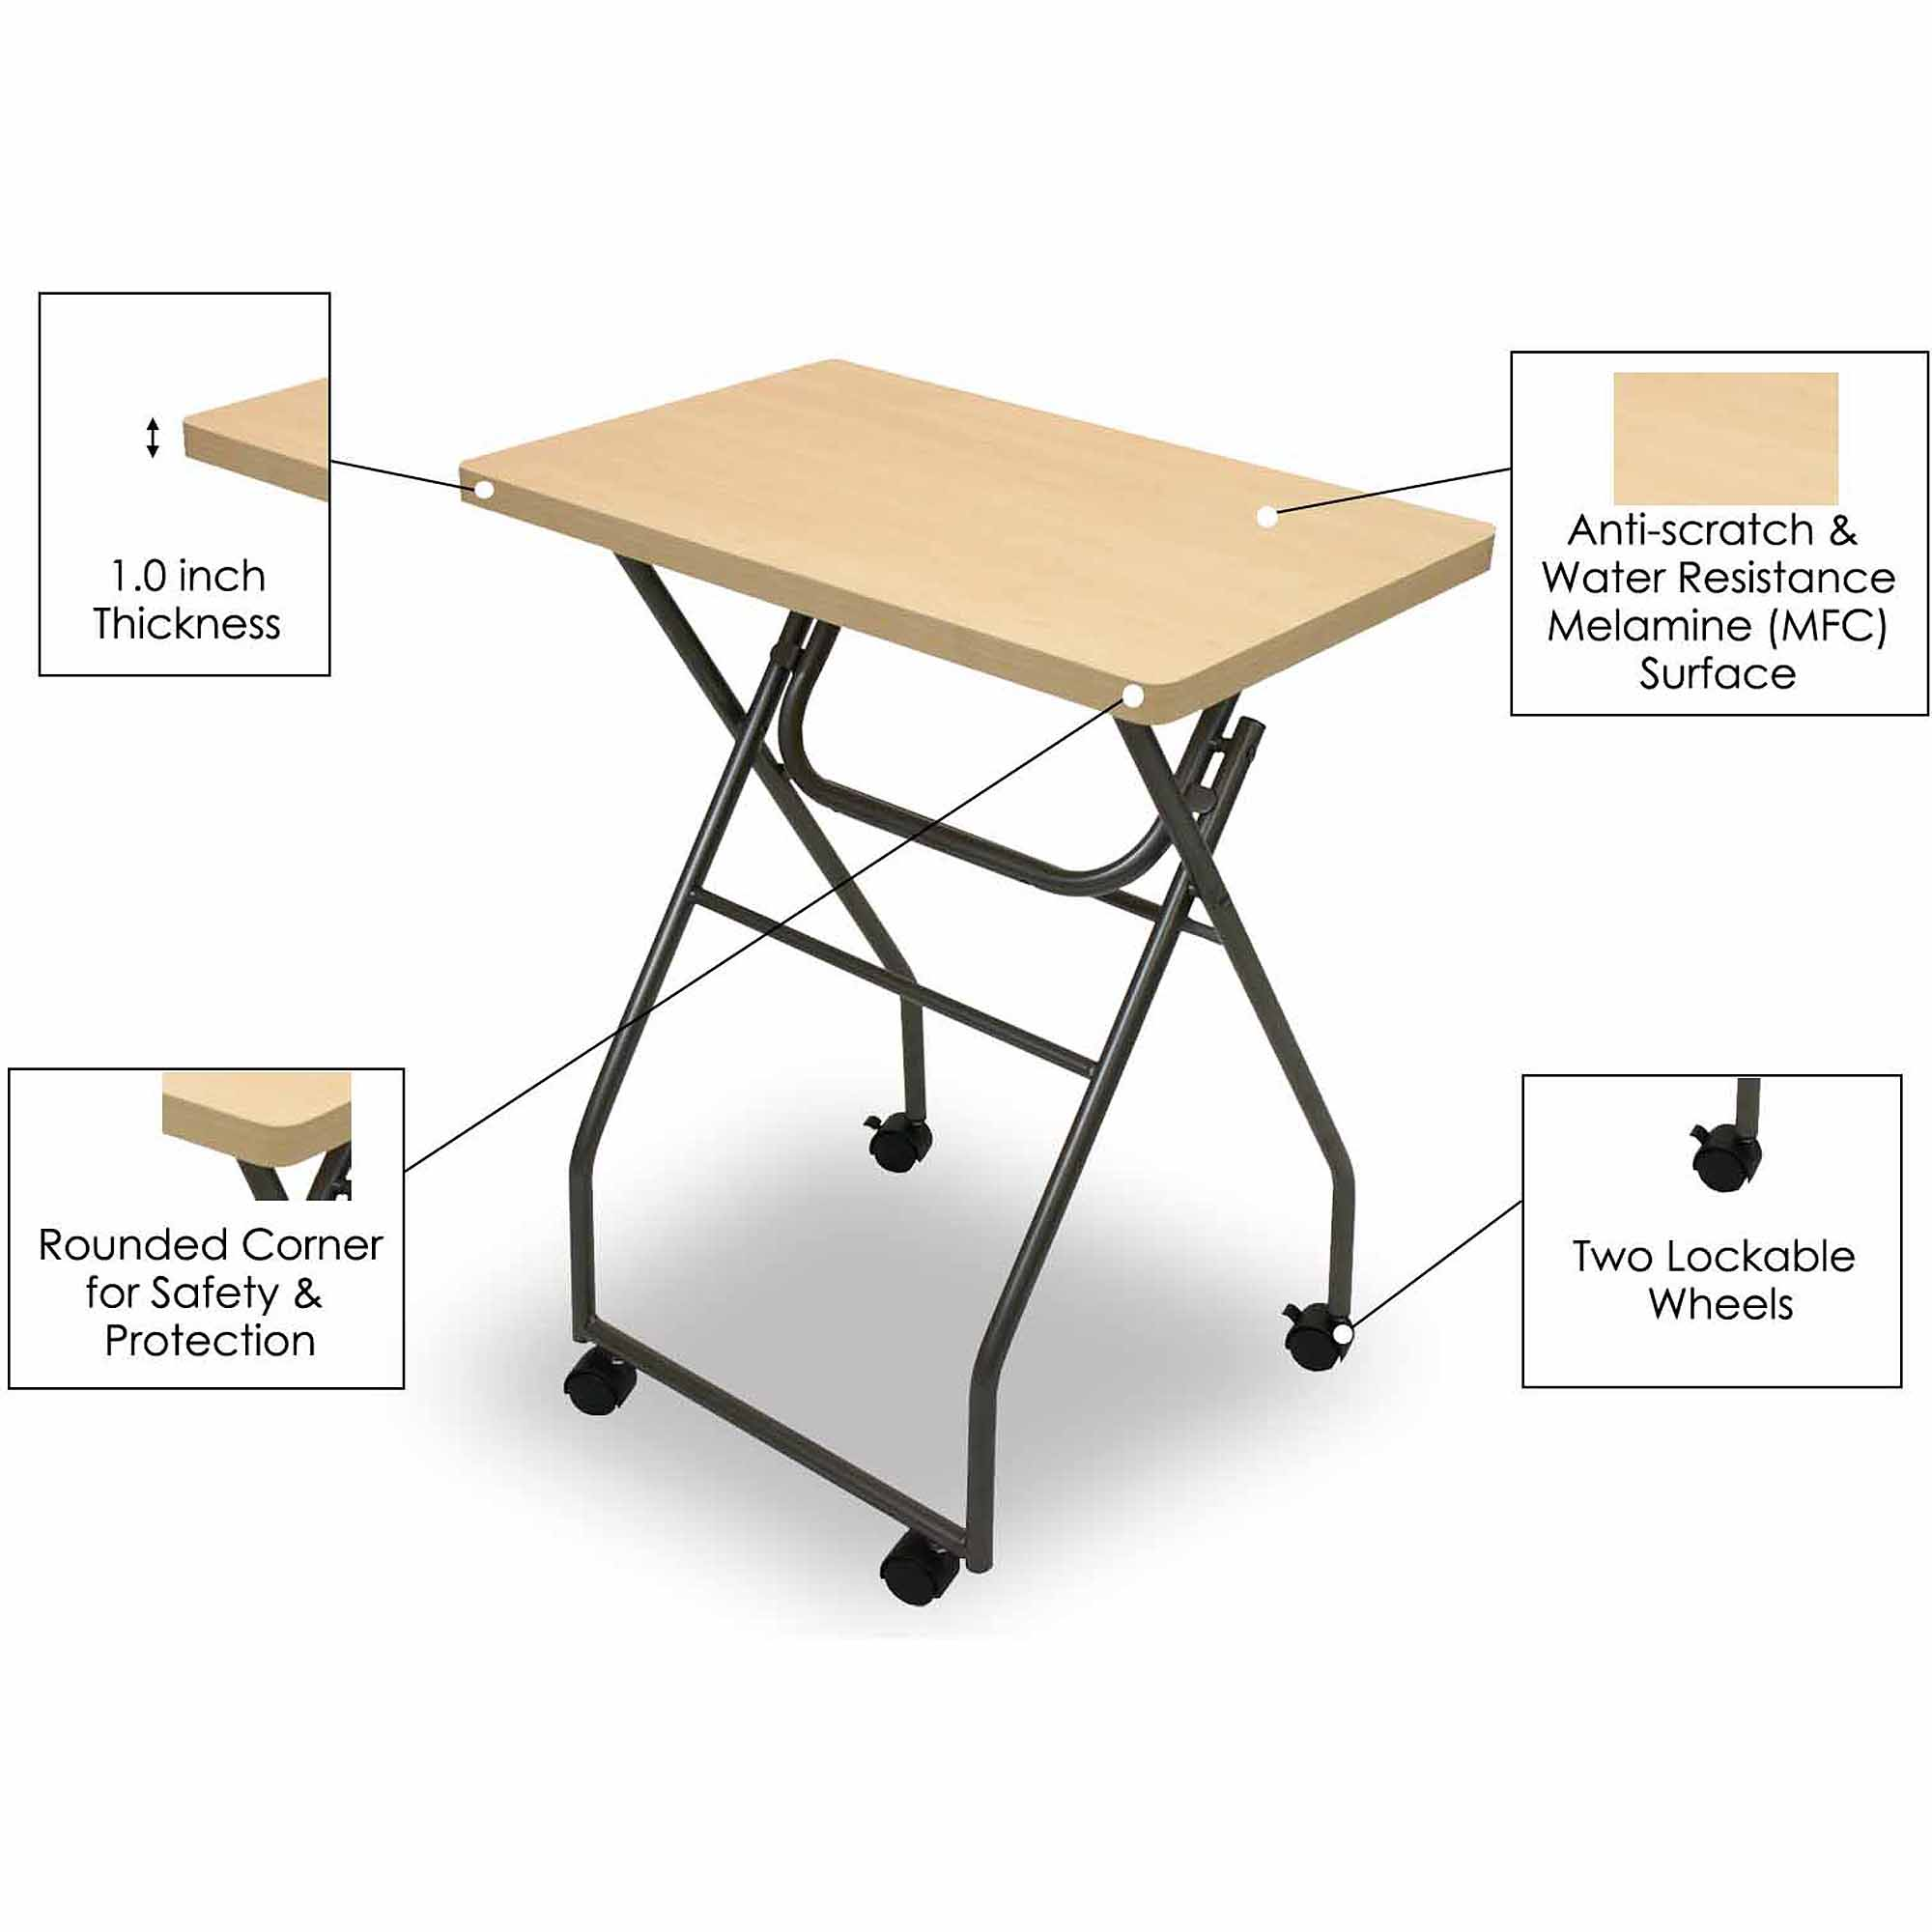 Merveilleux Easi Folding Multi Purpose Personal Laptop Stand/Table By Furinno    Walmart.com